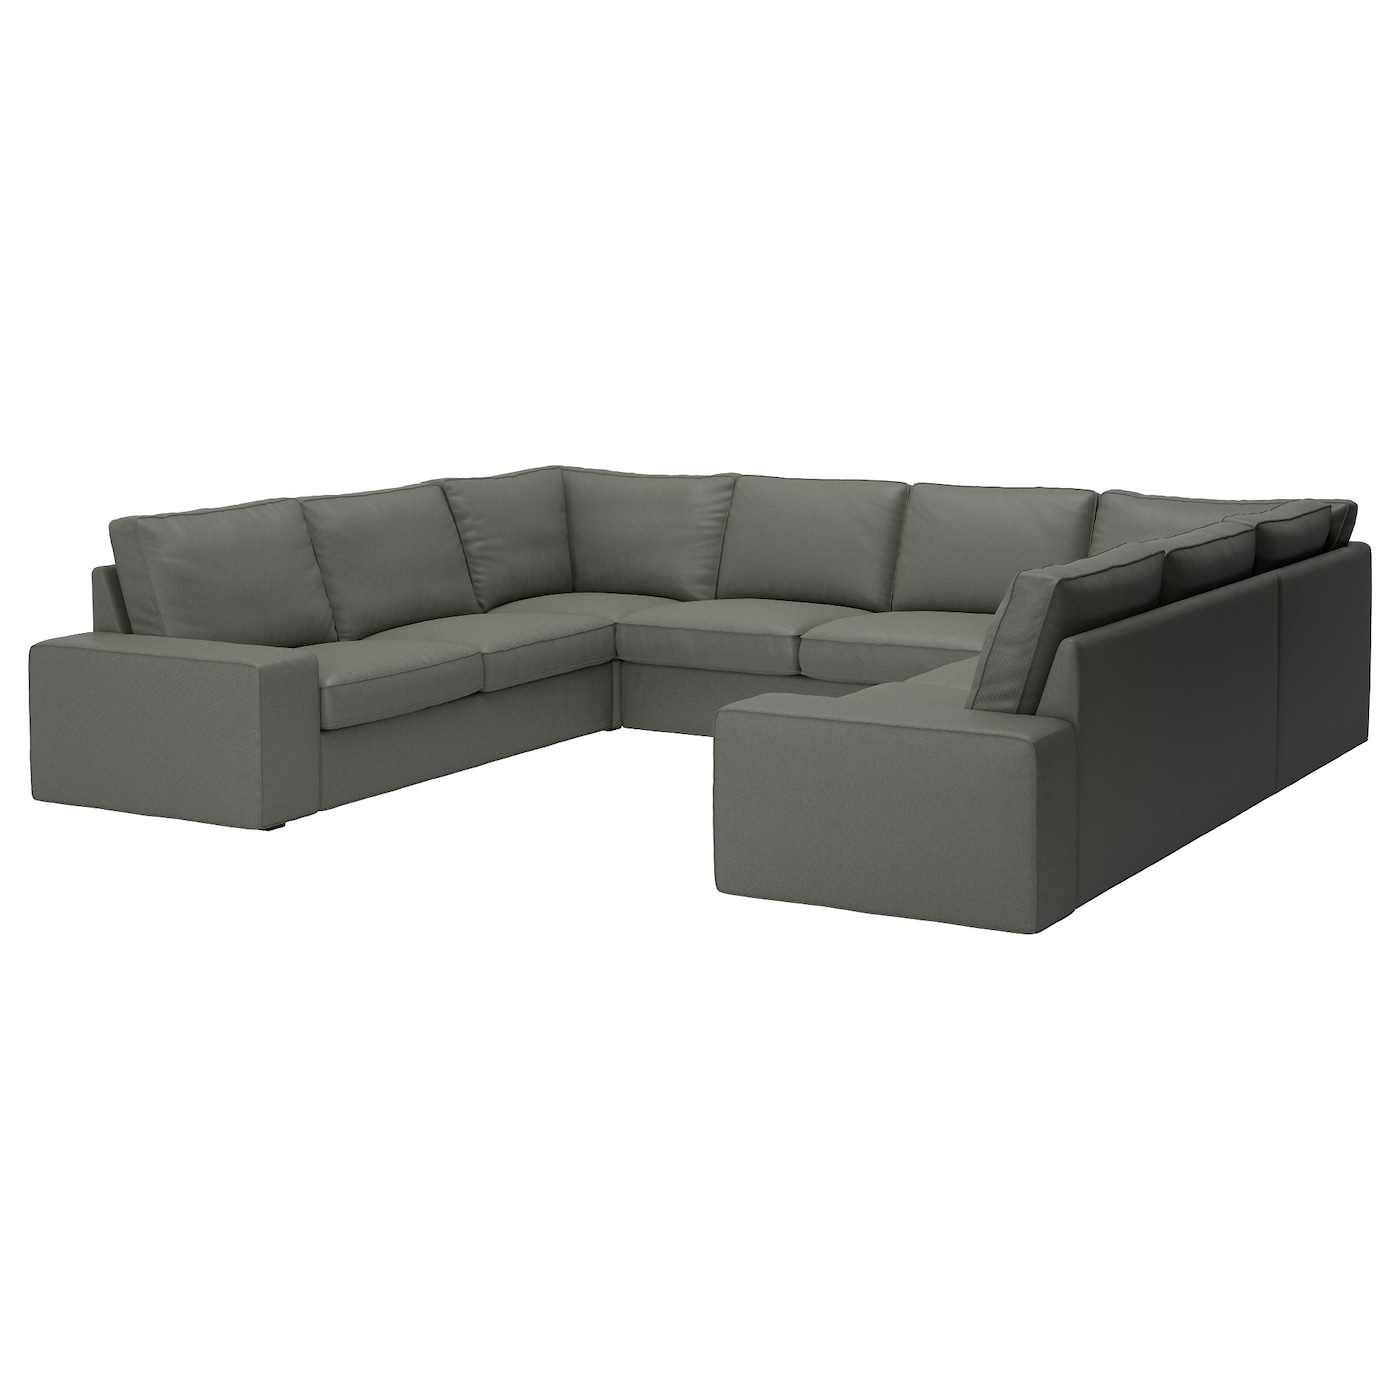 kivik sofa u shaped 8 seater borred grey green ikea